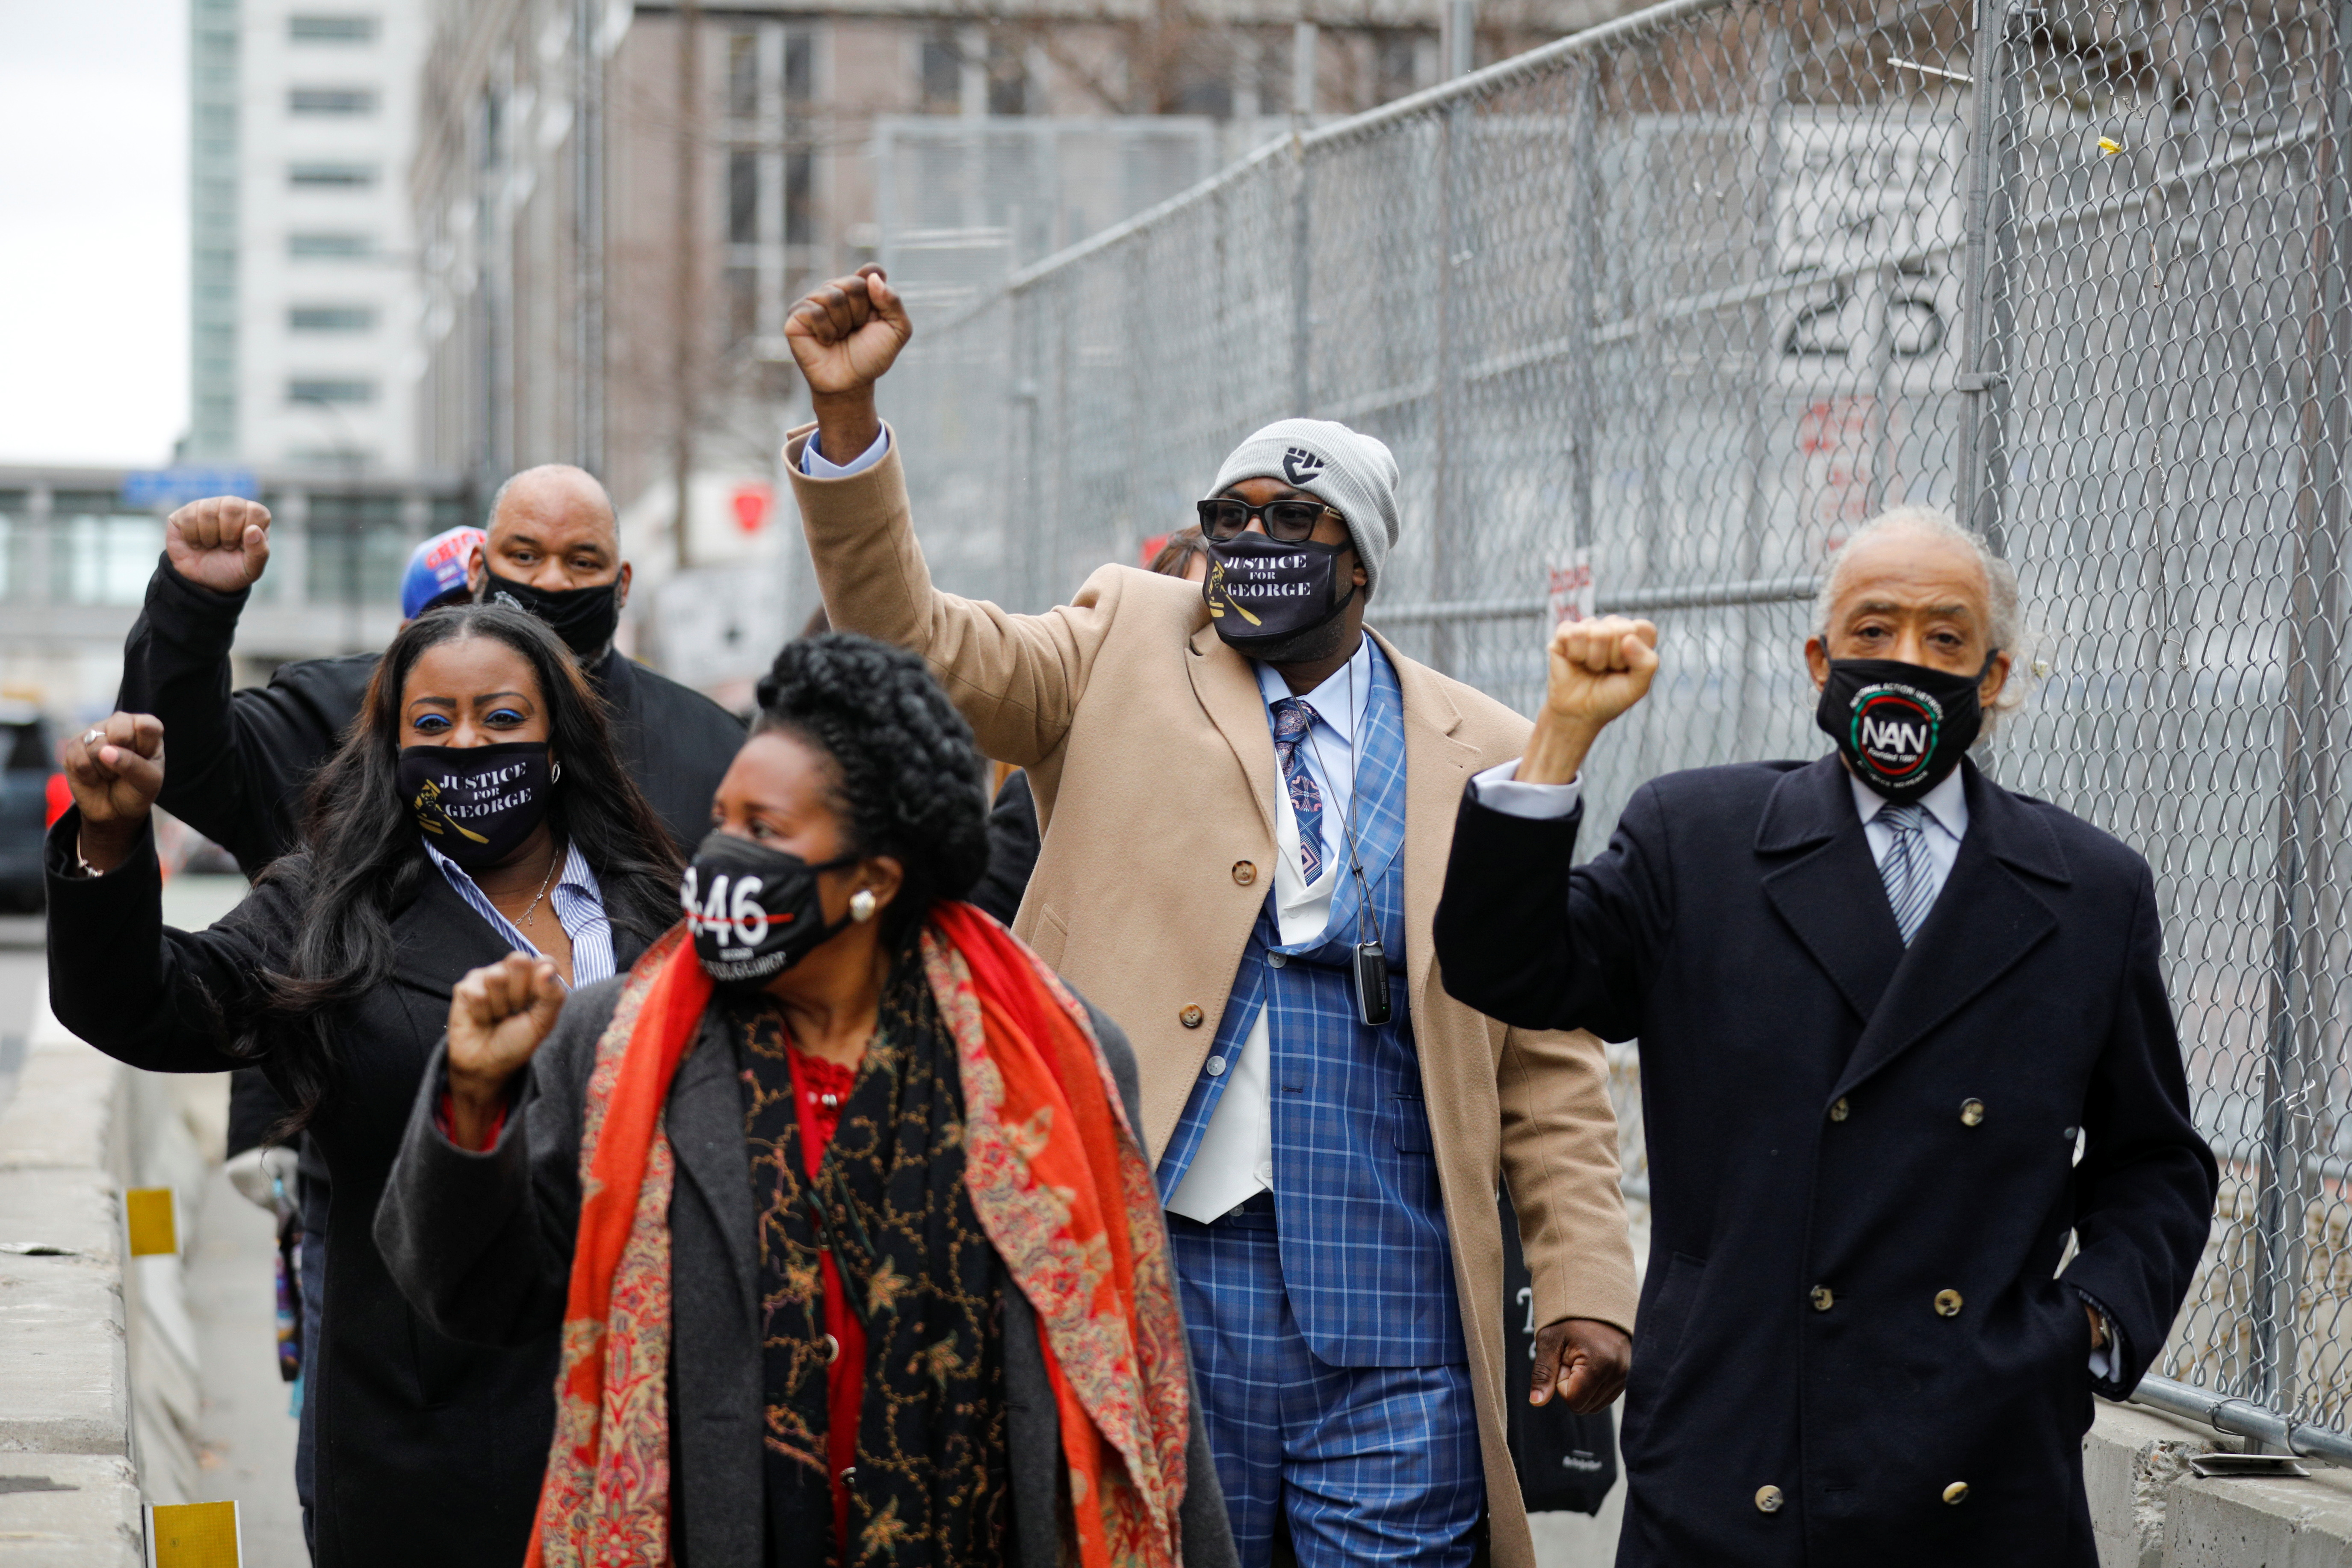 The Floyd family and Reverend Al Sharpton gesture as they arrive at the Hennepin County Government Center for closing statements in the trial of former police officer Derek Chauvin, who is facing murder charges in the death of George Floyd, in Minneapolis, Minnesota, U.S., April 19, 2021. REUTERS/Nicholas Pfosi